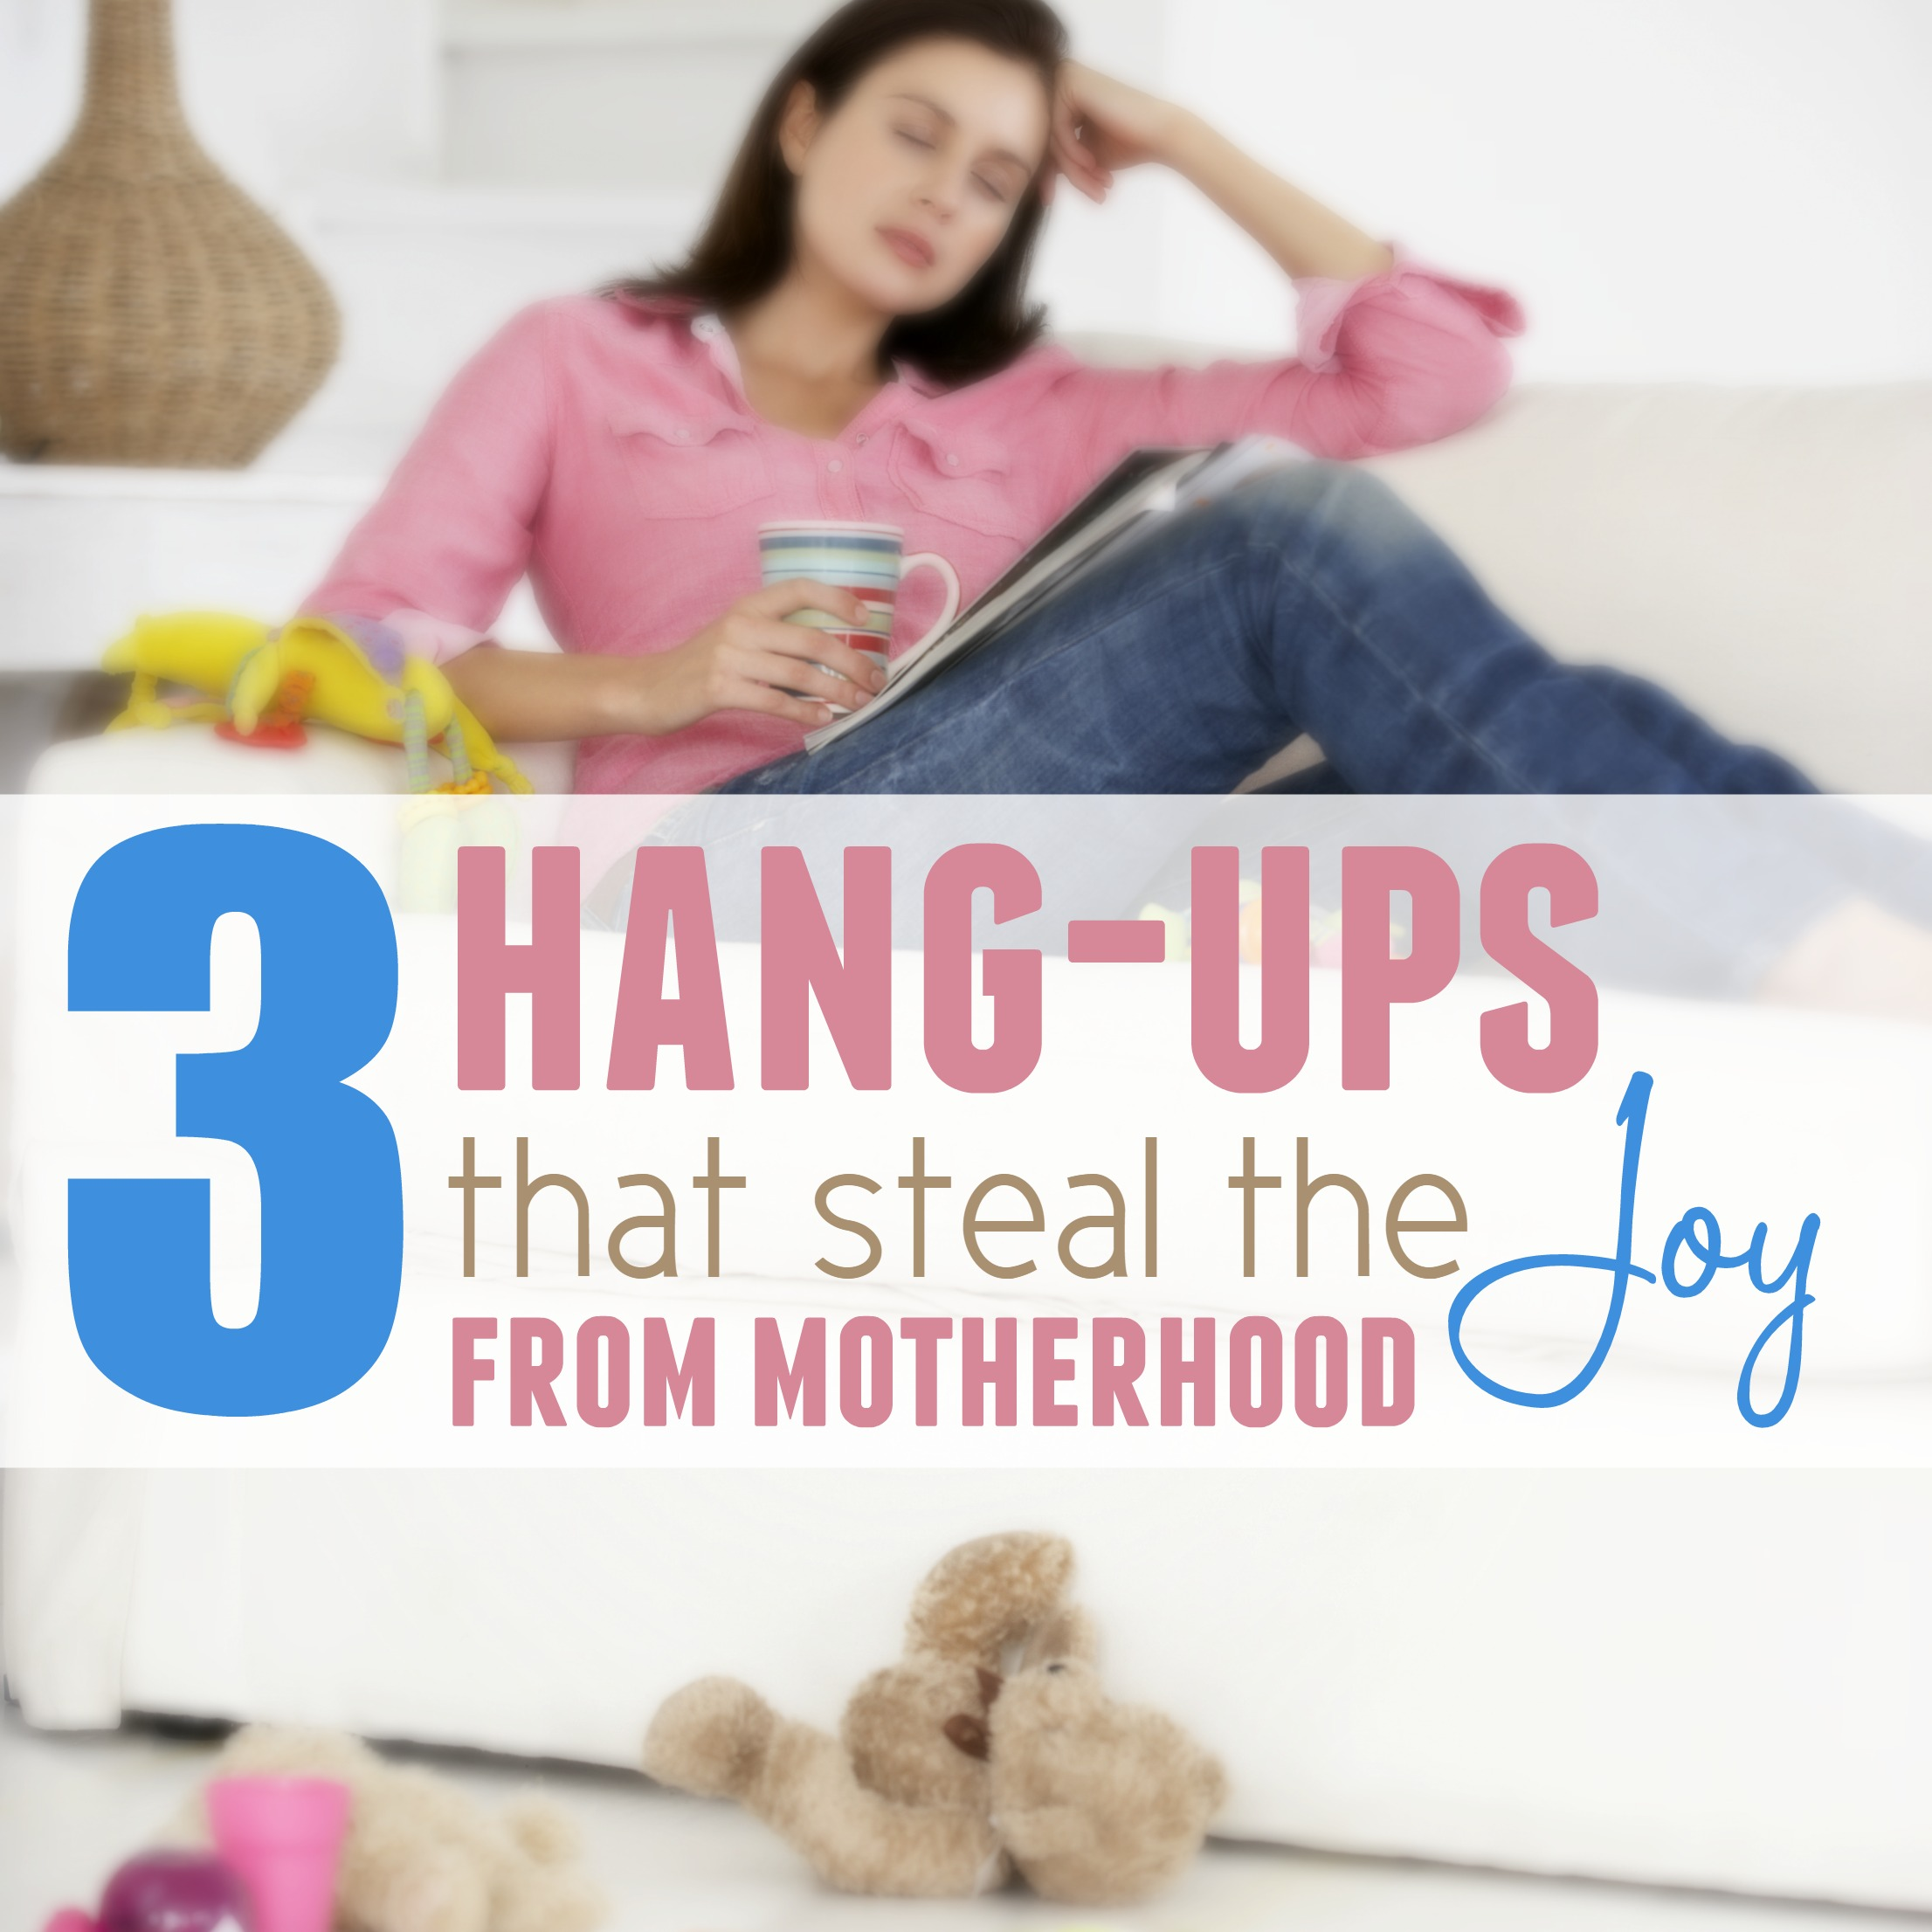 3 things that steal the joy from motherhood